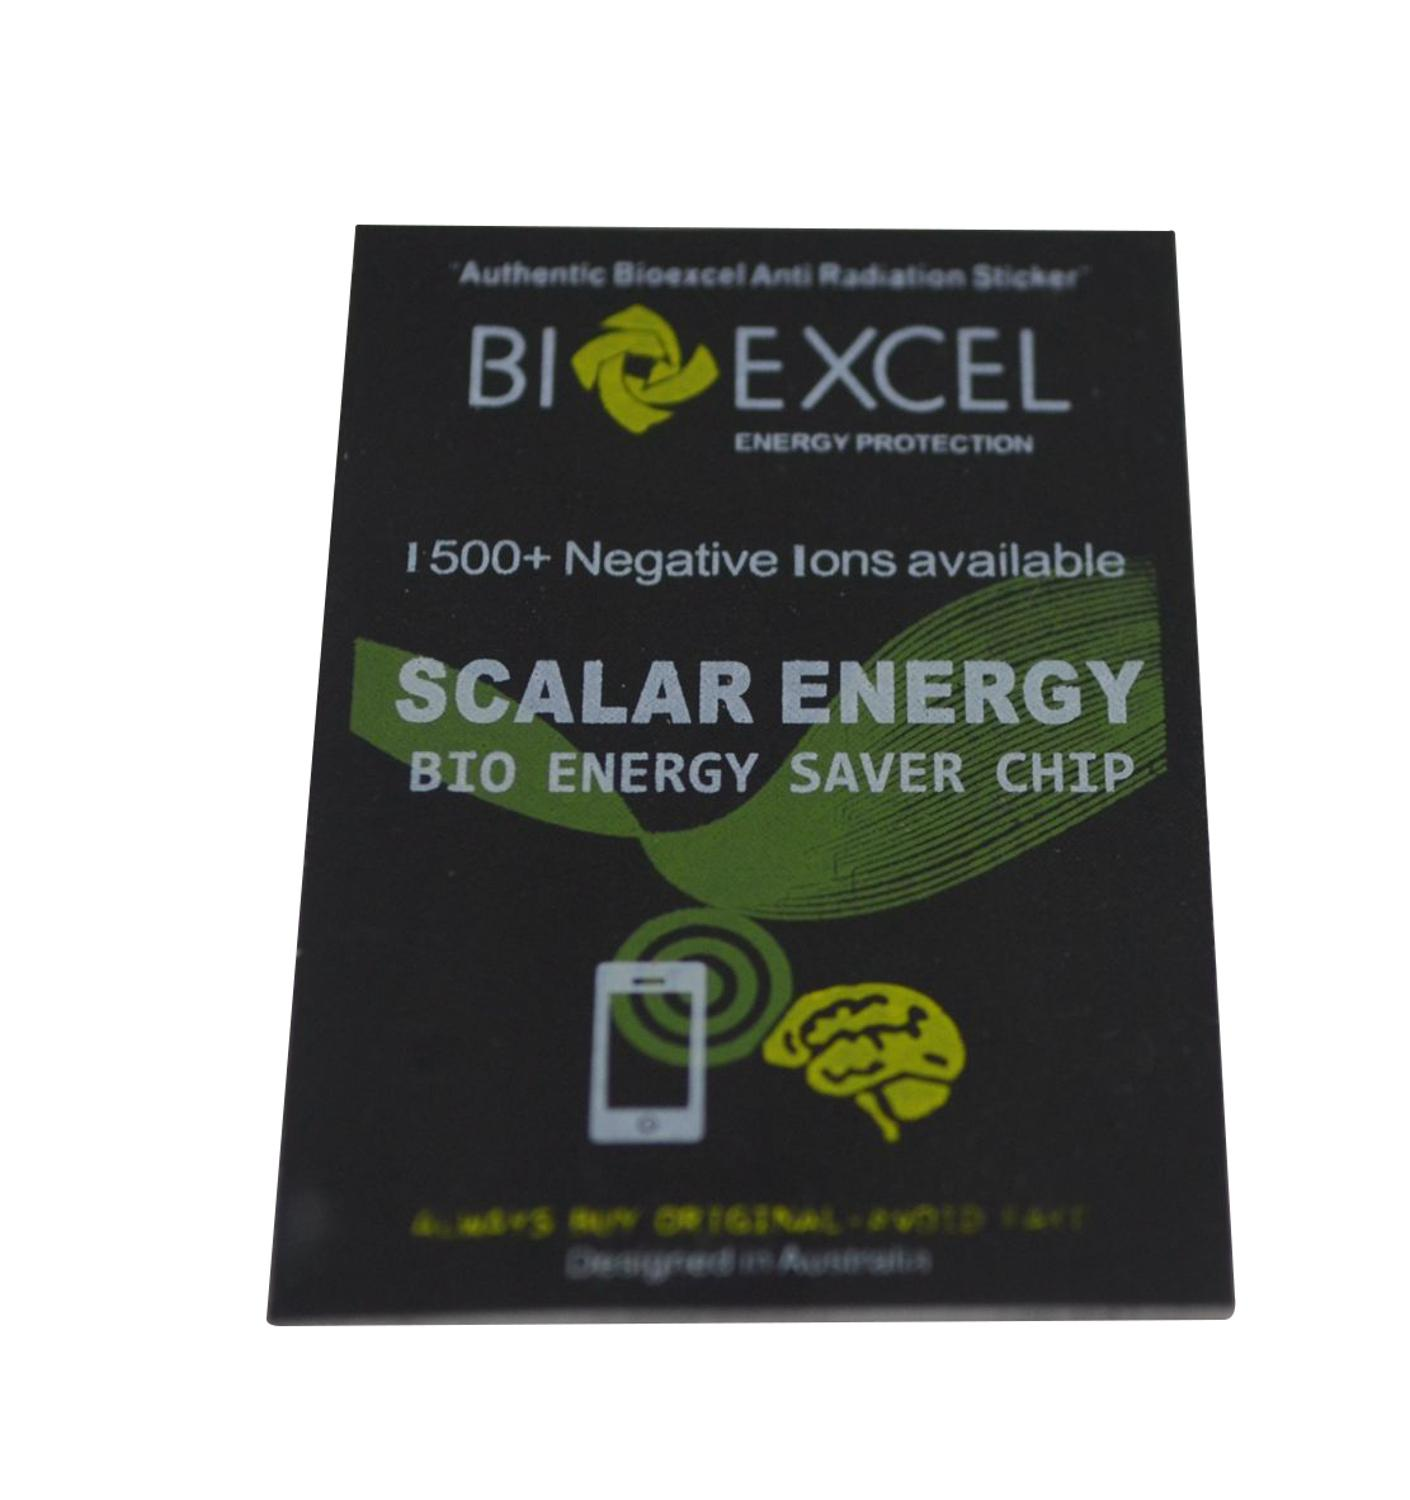 New 20pcs/ lot energy protection bioexcel Anti radiation Sticker For Cell Phone living power corporation energy sticker